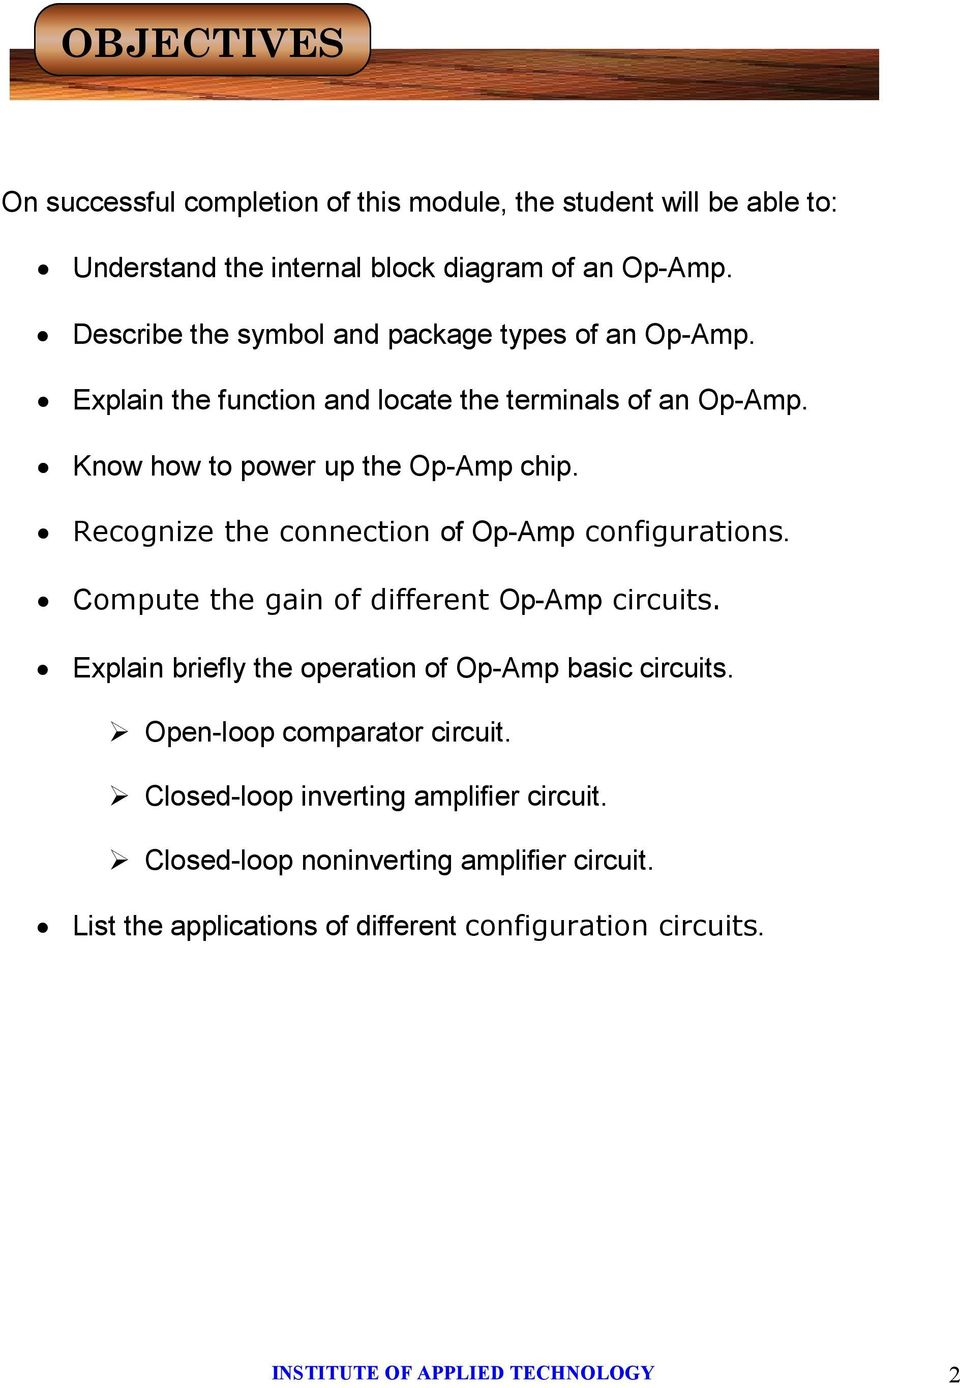 Recognize the connection of OpAmp configurations. Compute the gain of different OpAmp circuits. Explain briefly the operation of OpAmp basic circuits.